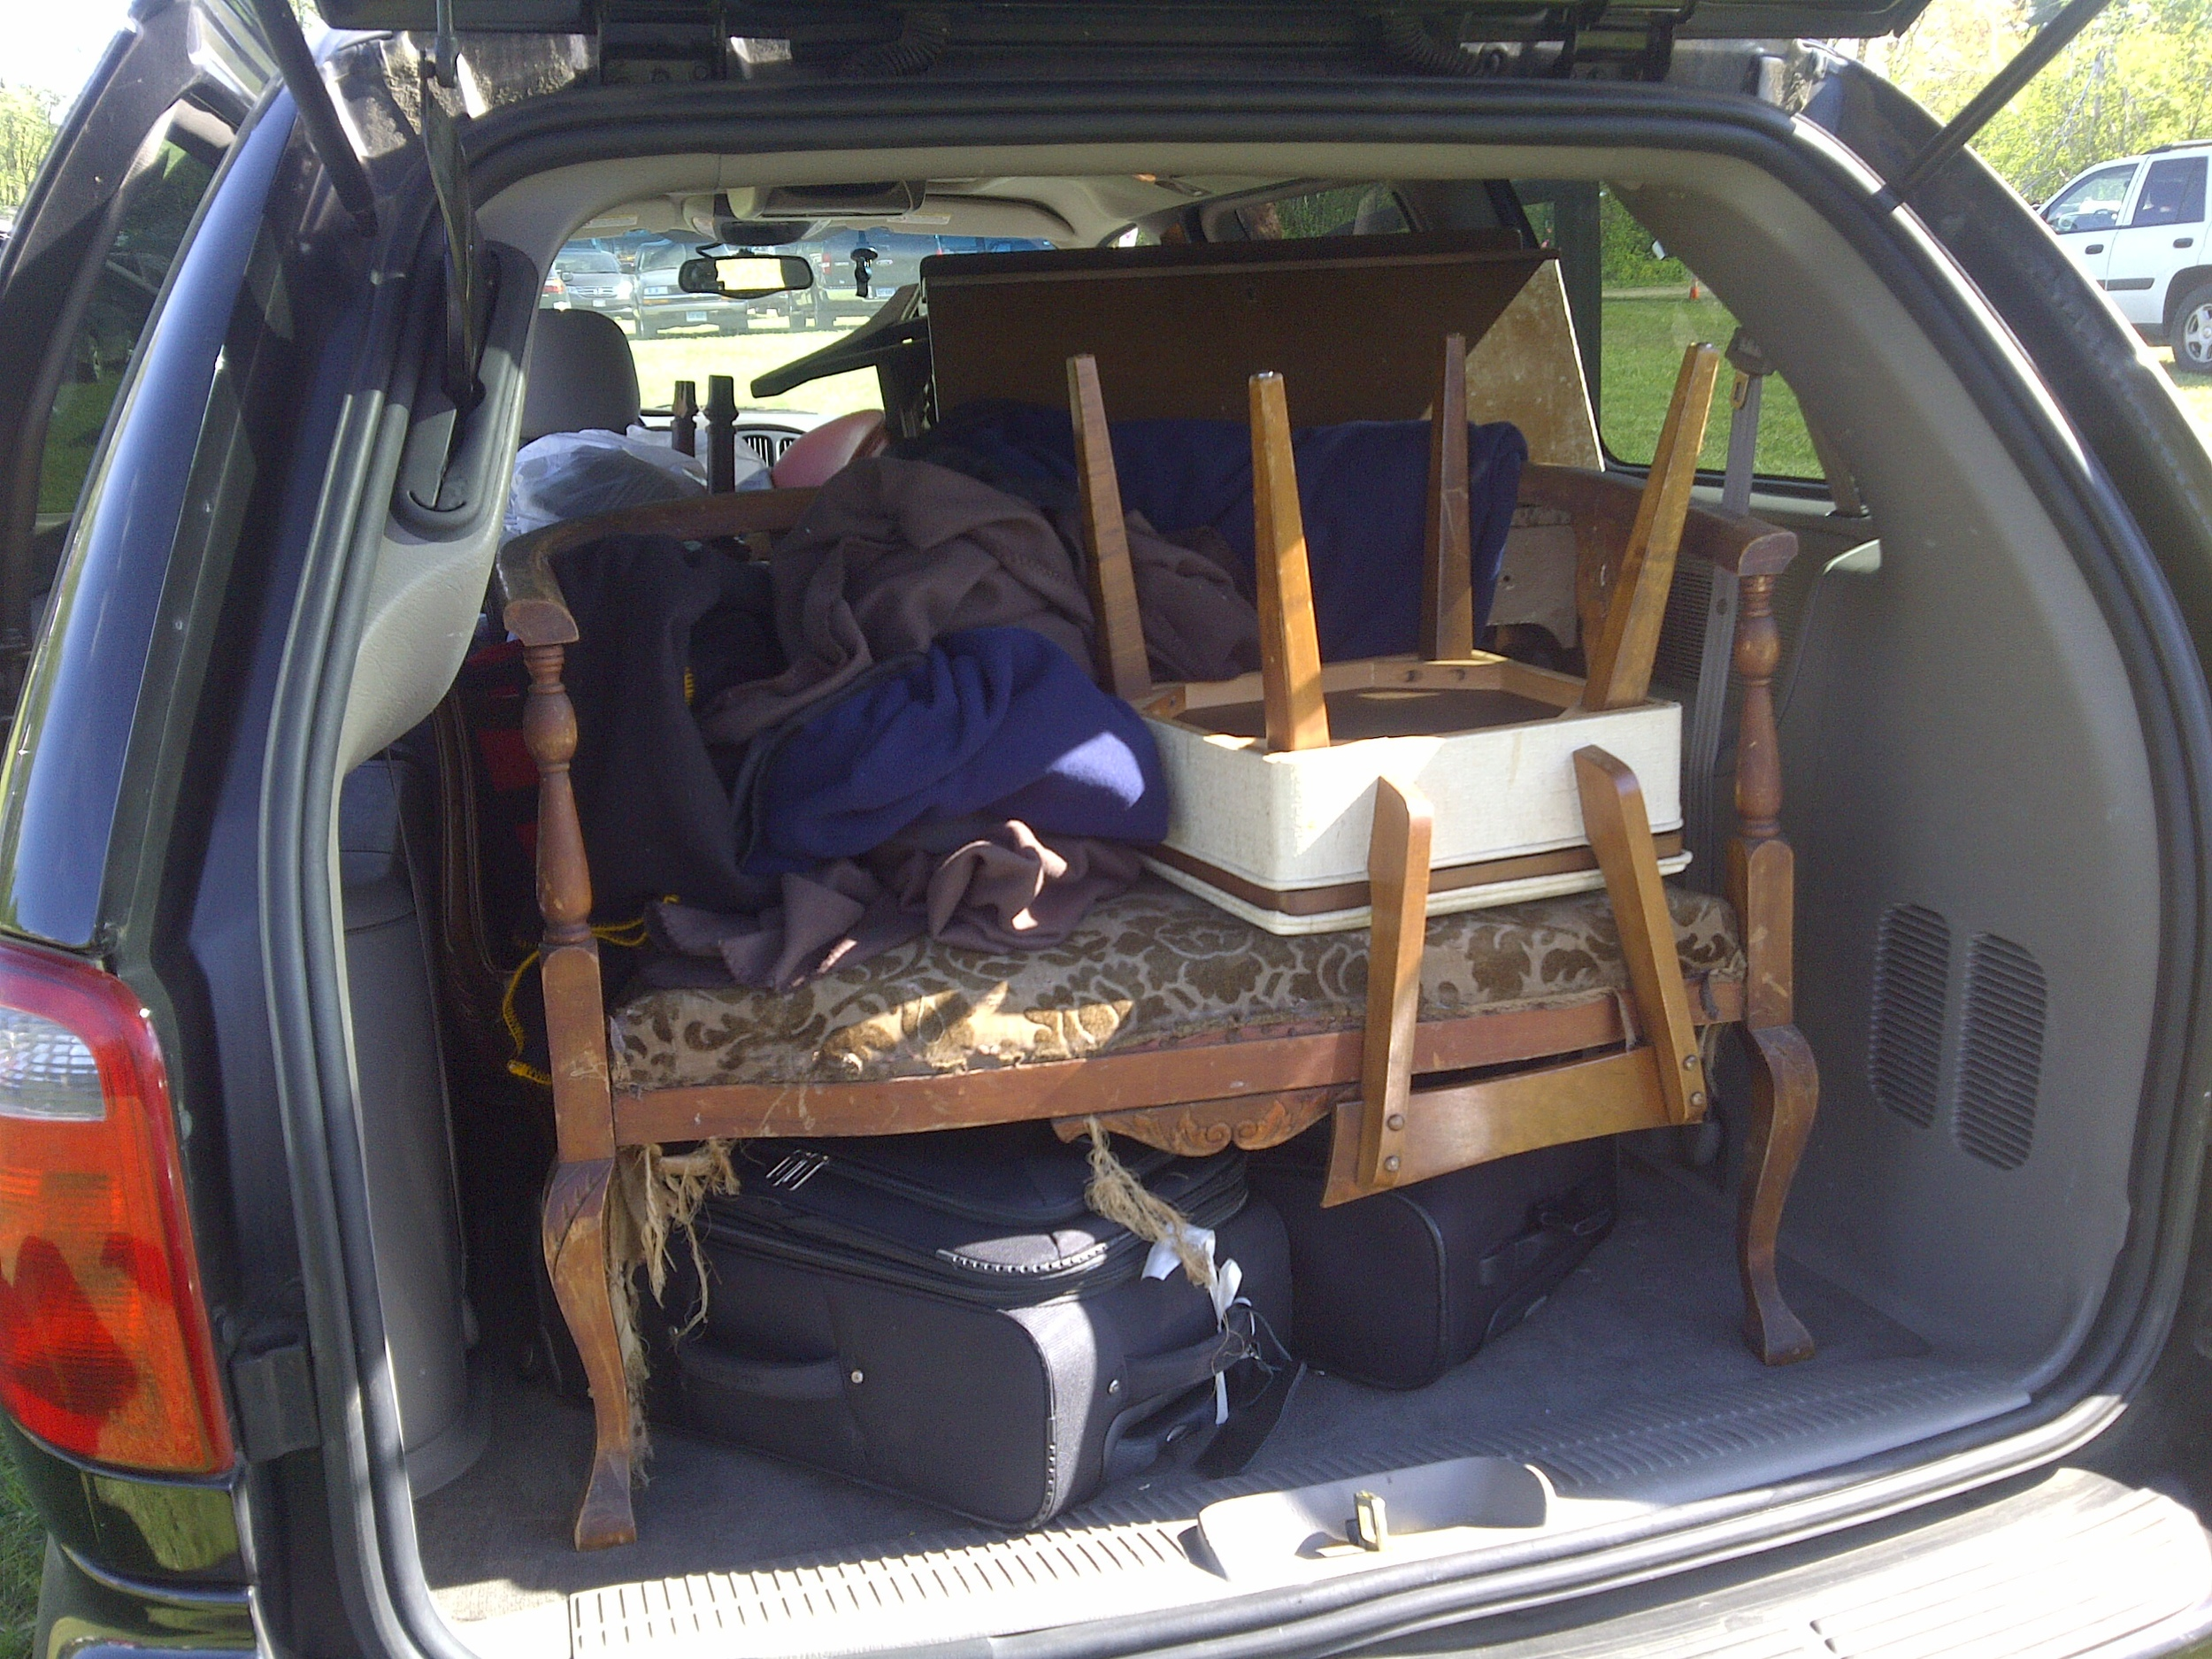 Minivan packed with new purchases ... luckily our suitcases still fit!